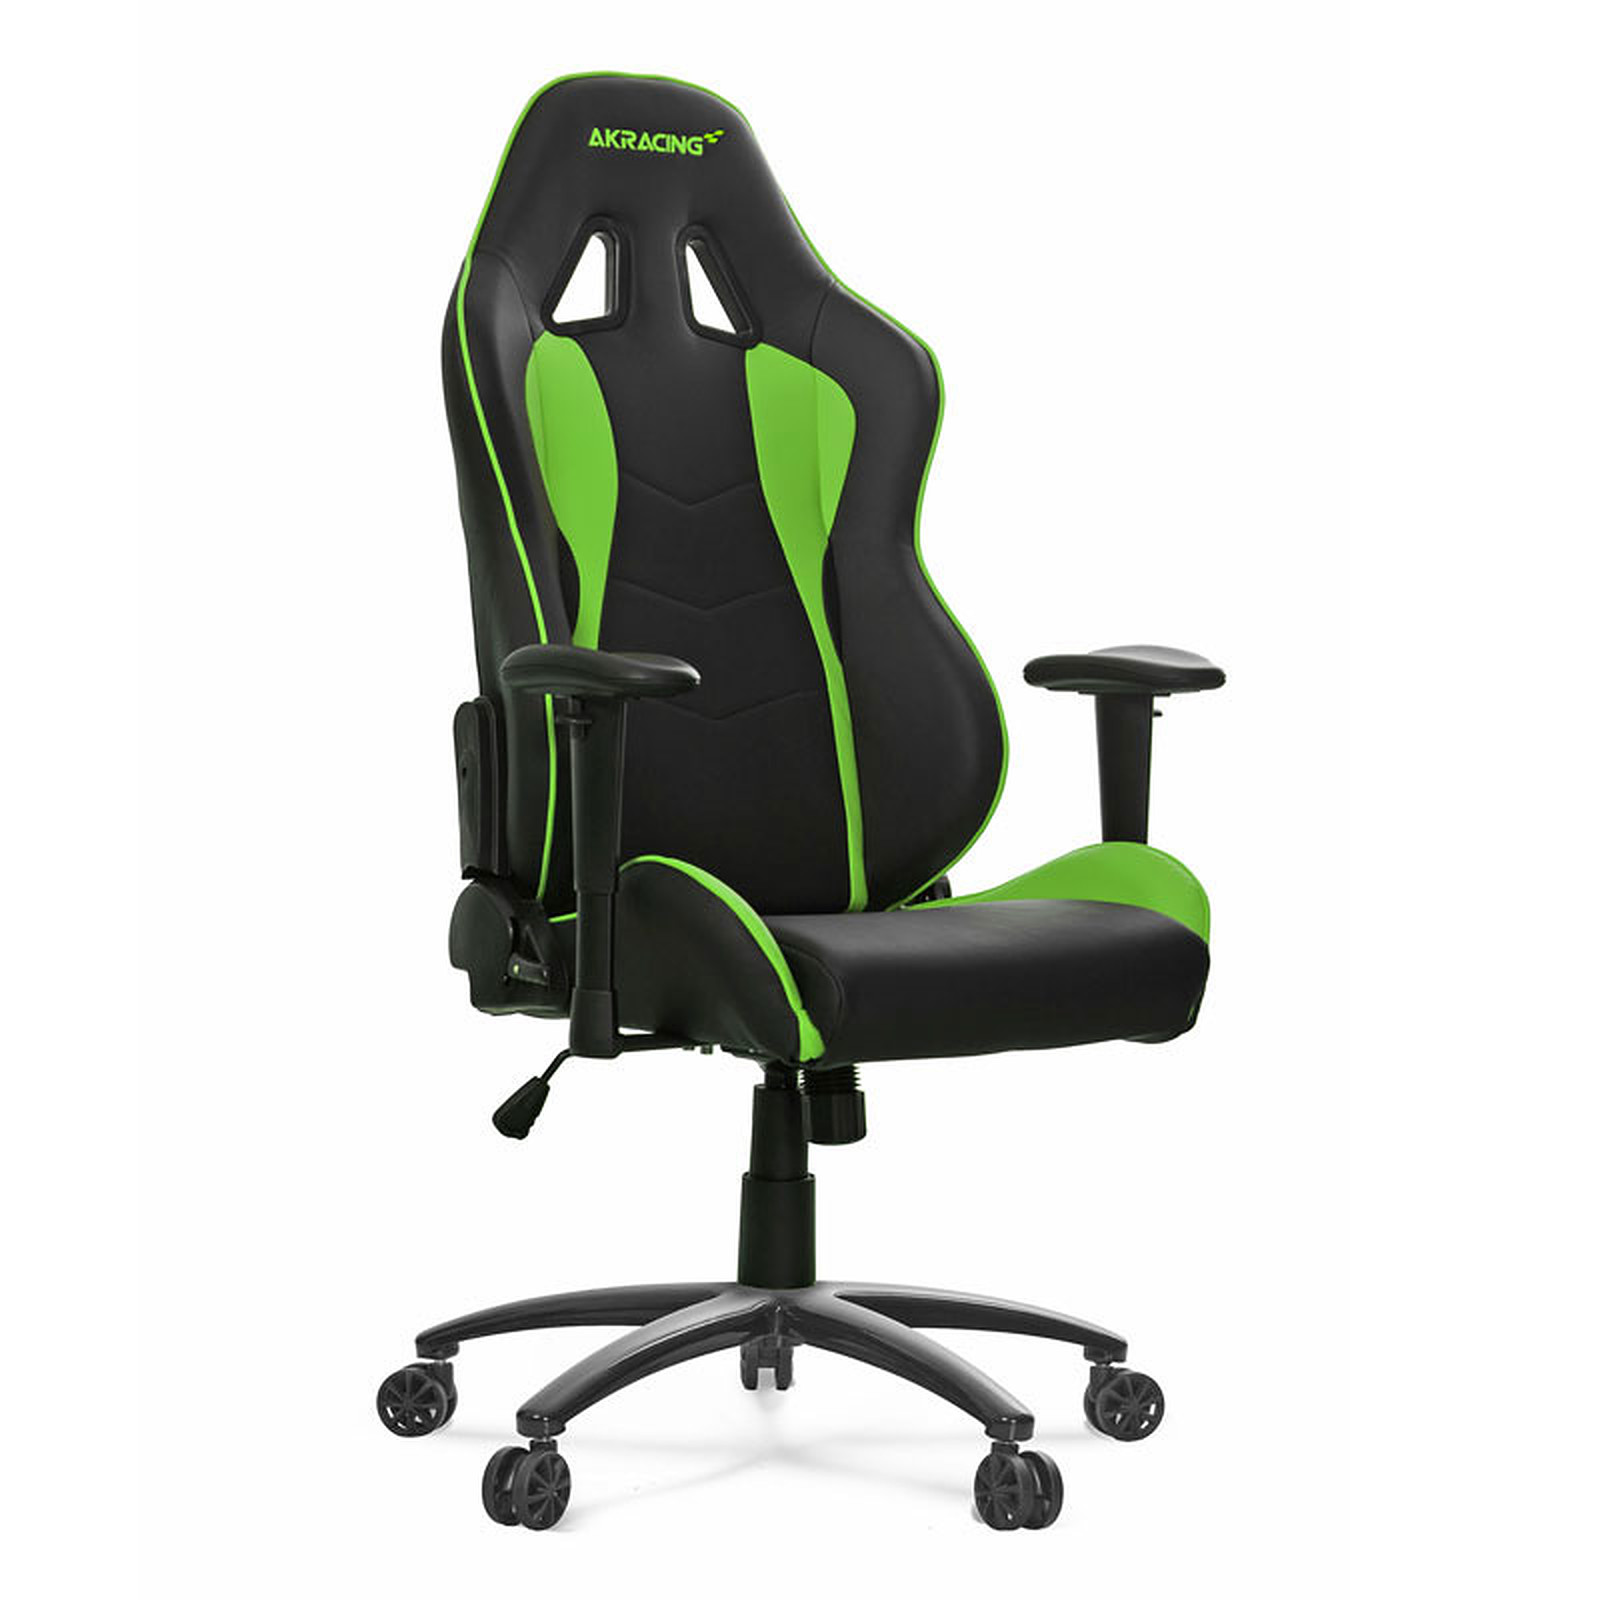 AKRacing Nitro Gaming Chair (vert)